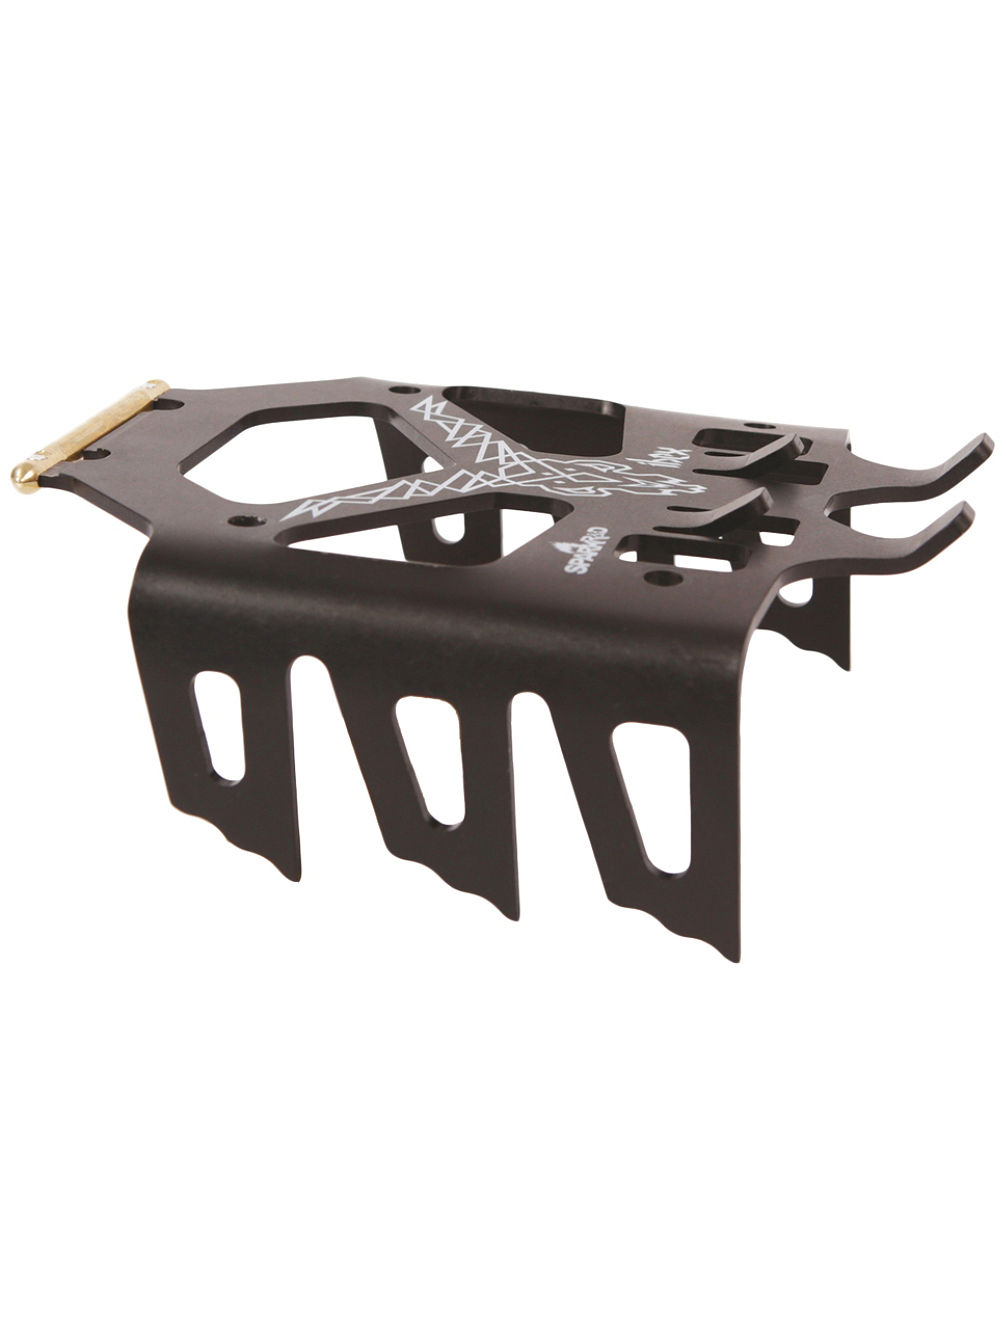 Ibex Crampons Regular